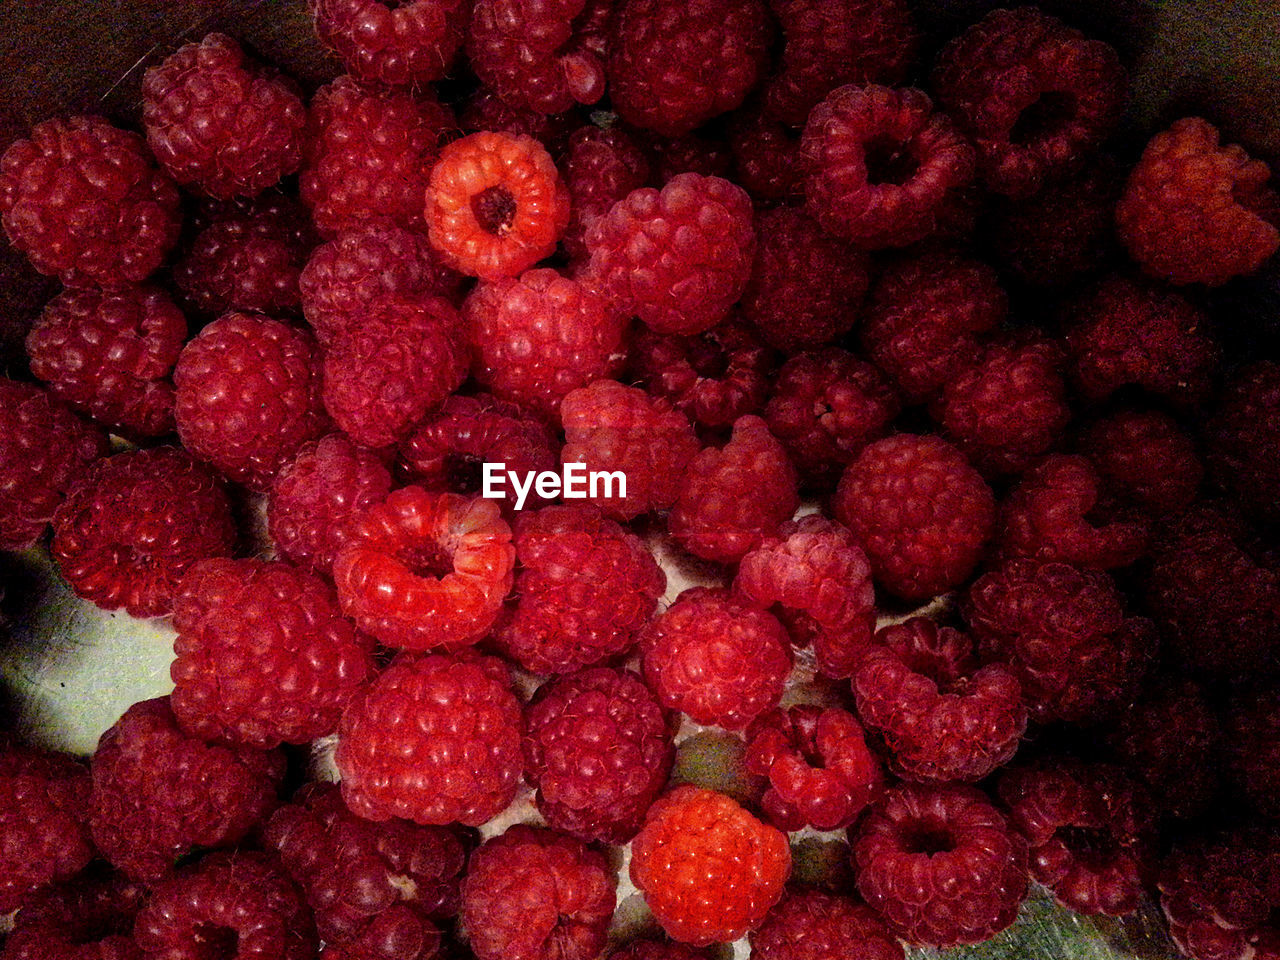 berry fruit, fruit, healthy eating, red, food and drink, food, full frame, raspberry, wellbeing, freshness, large group of objects, no people, backgrounds, abundance, close-up, strawberry, ripe, indoors, directly above, juicy, black background, red currant, lychee